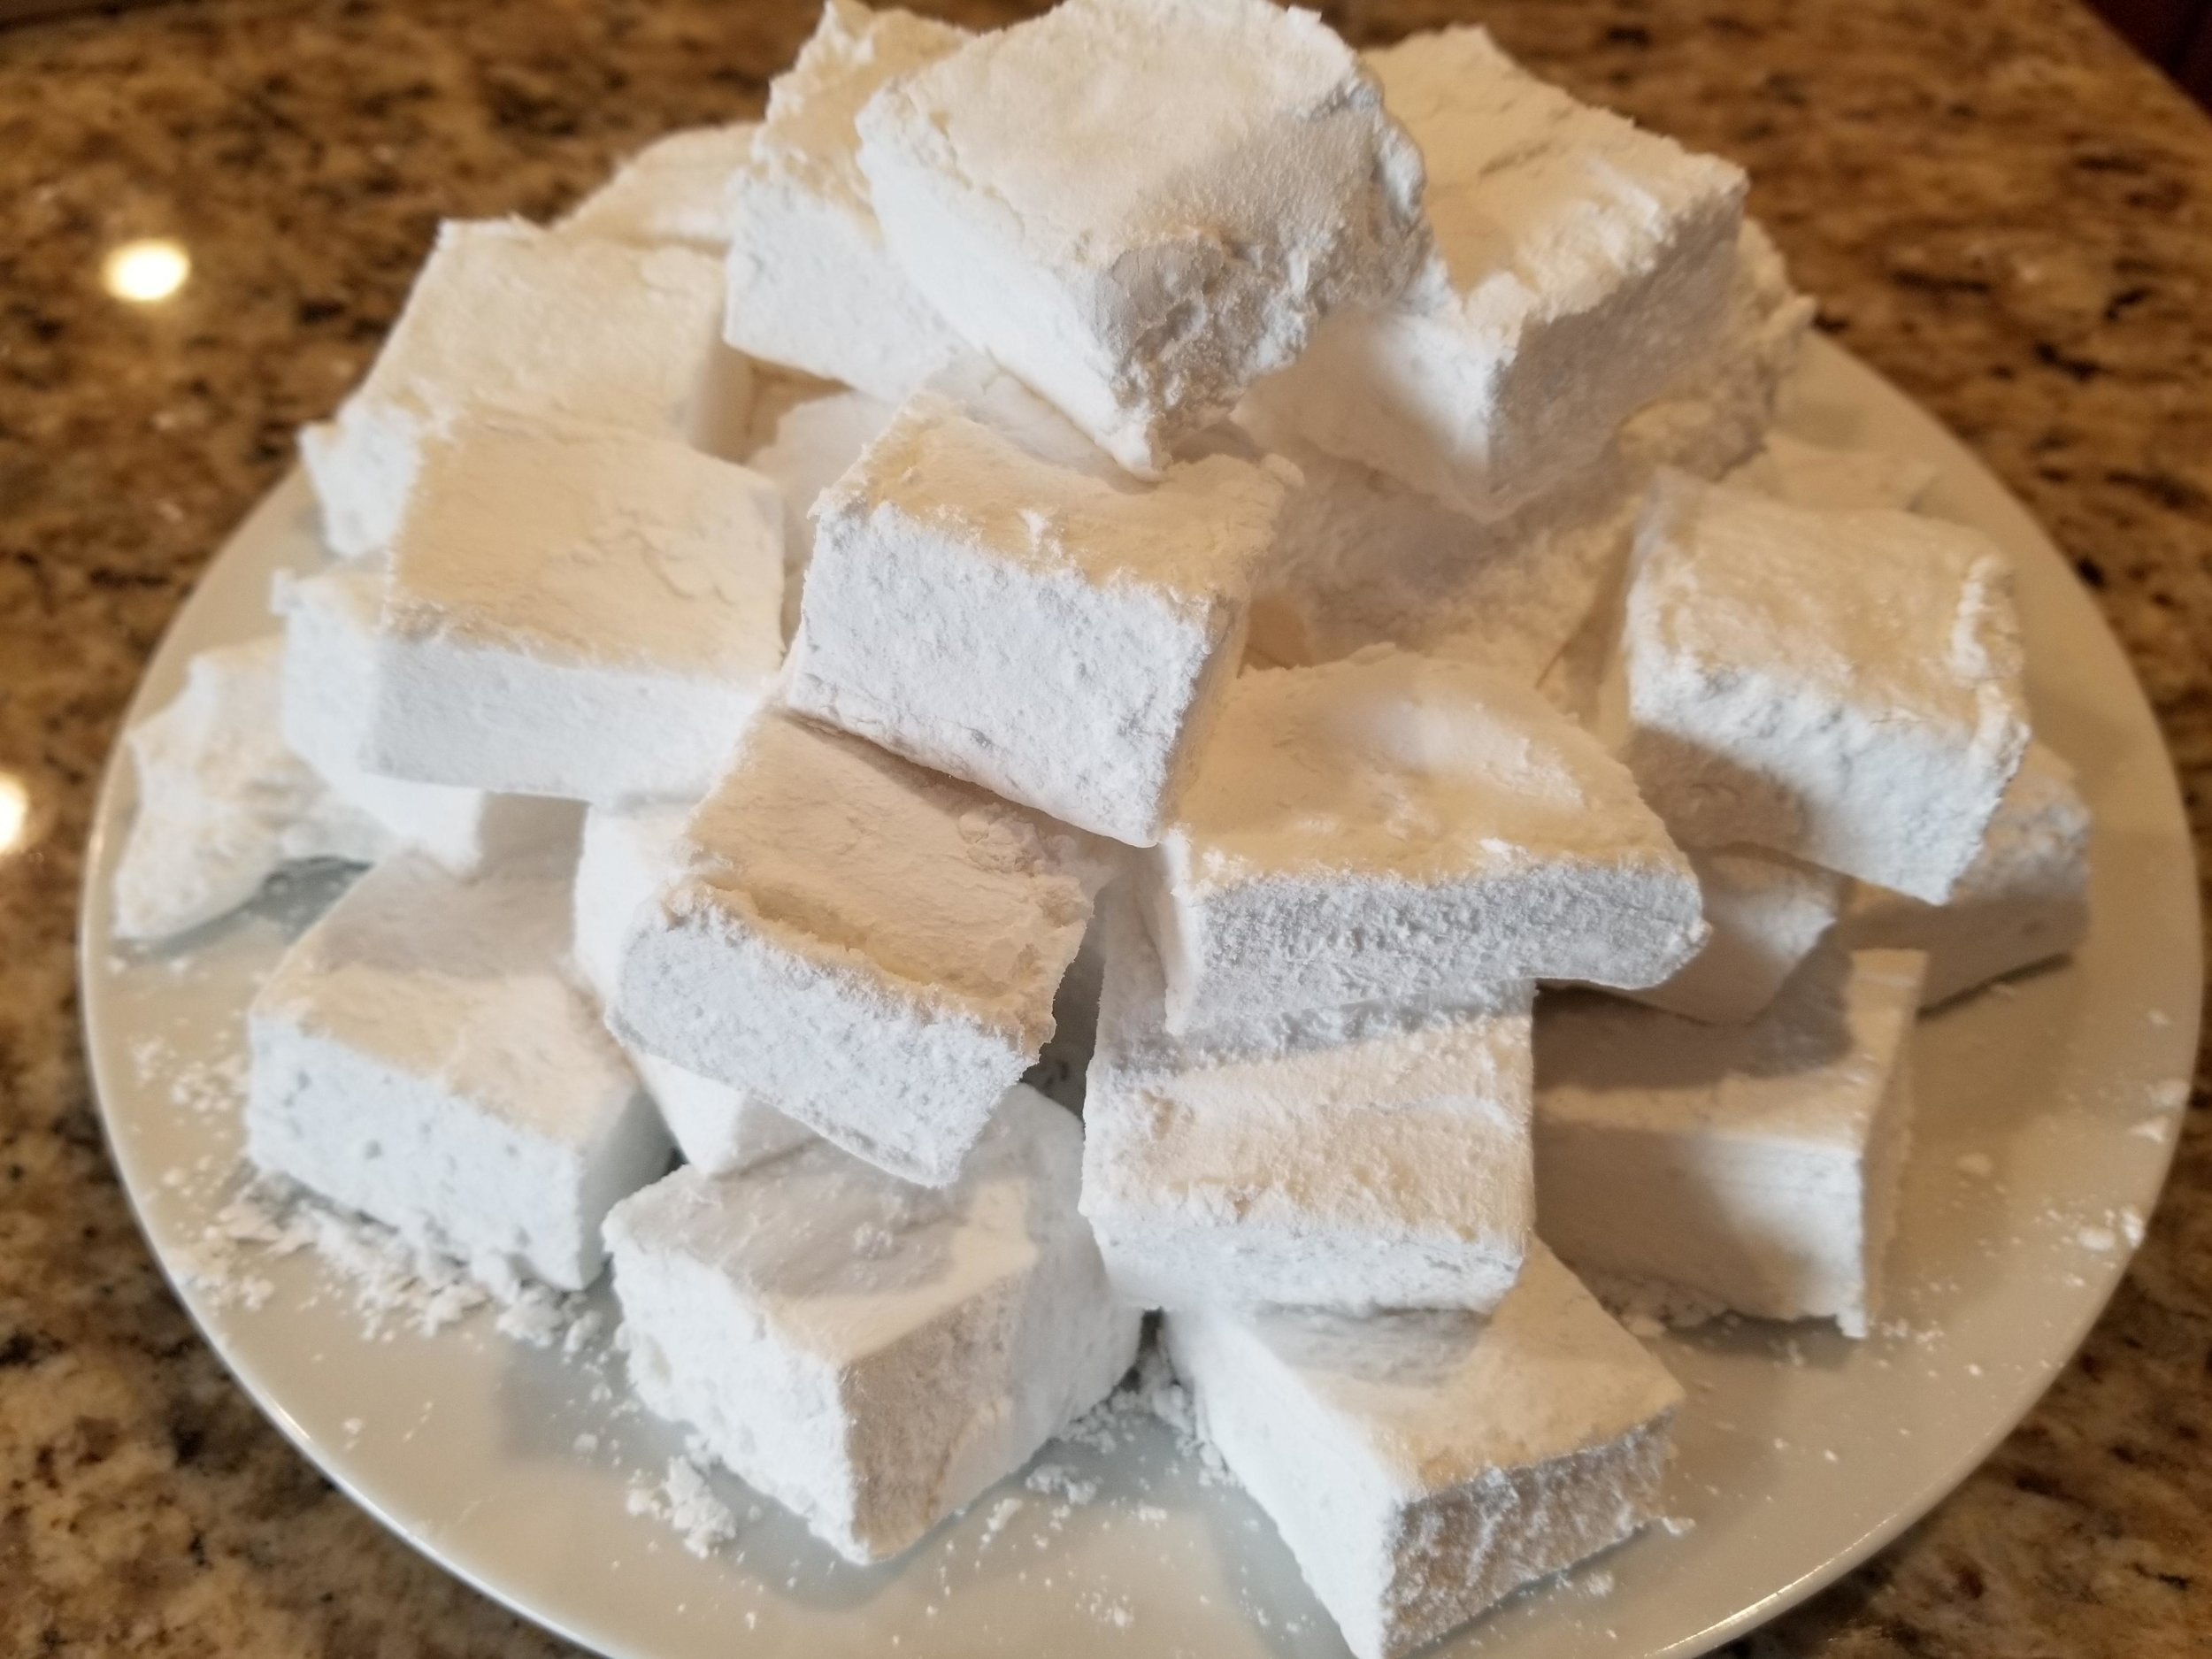 """14.  Homemade Marshmallows  I guess this isn't really a gift you can buy since it's primarily a homemade (store-bought """"homemade"""" ones don't cut it). But I've been googling this recipe for over a year and I don't want to go through the effort to make them, only want them in my mouth."""